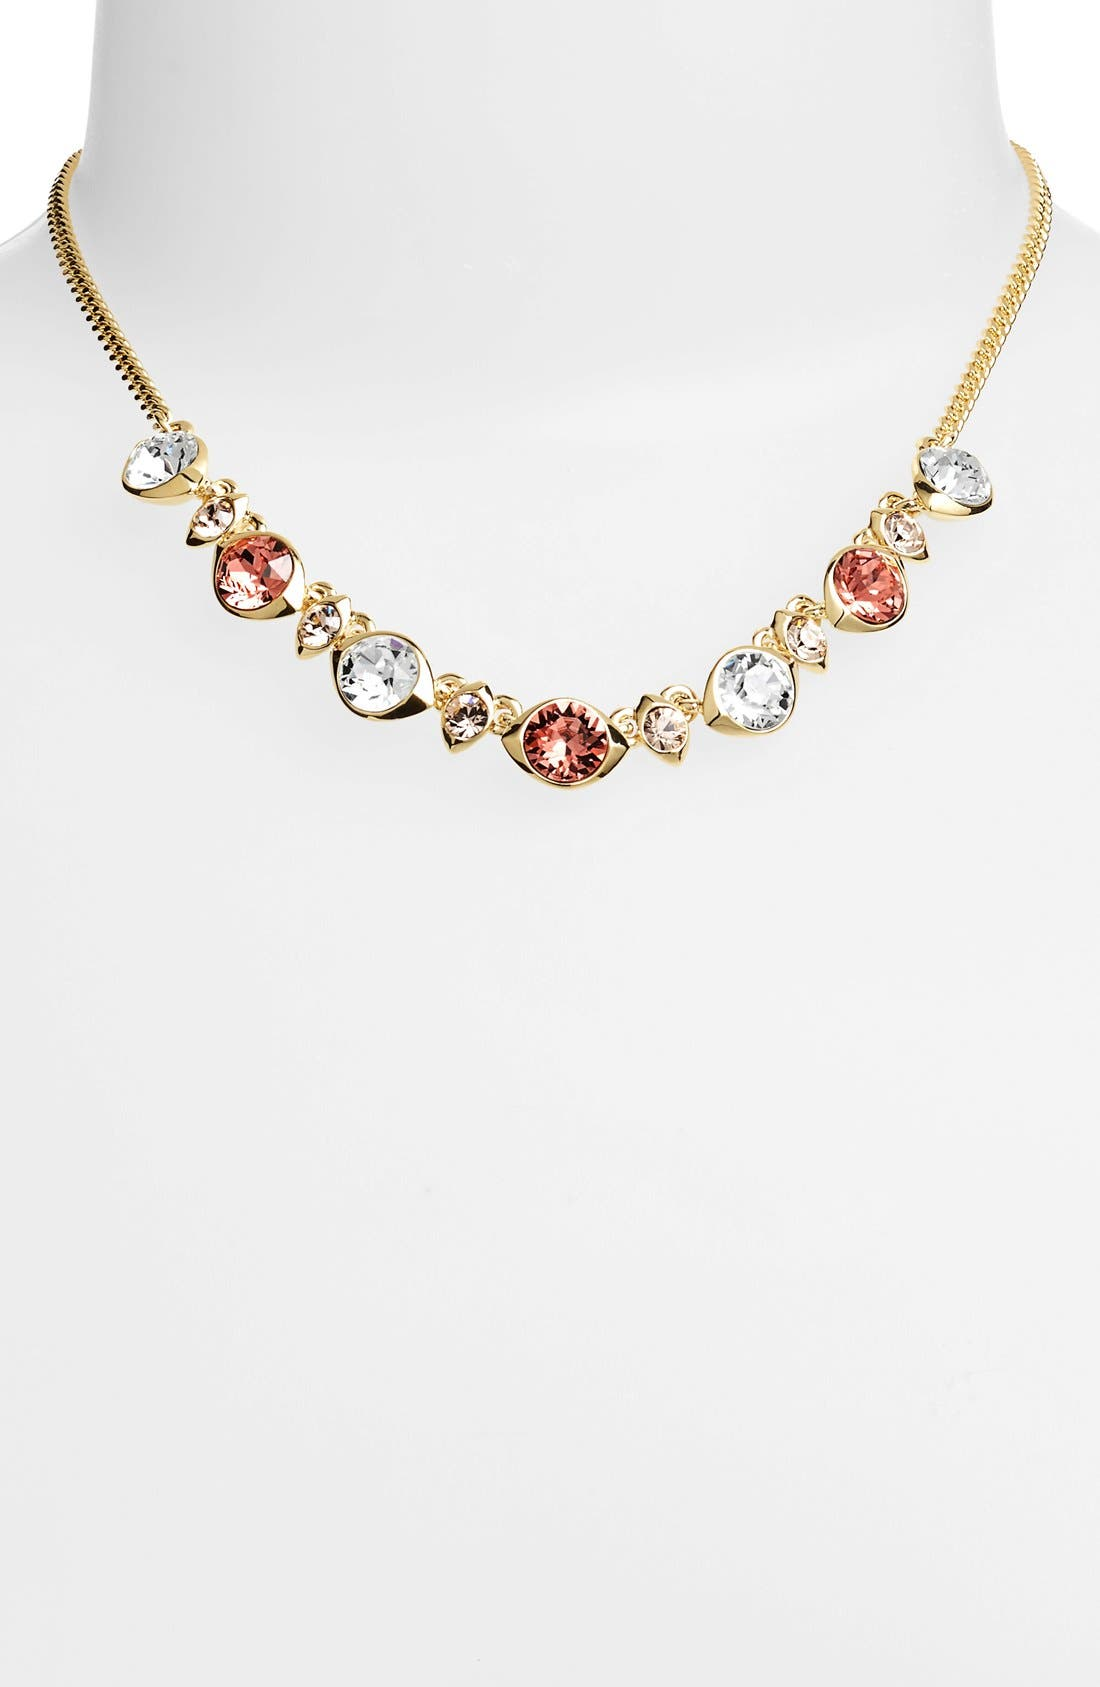 Alternate Image 1 Selected - Givenchy Crystal Necklace (Nordstrom Exclusive)